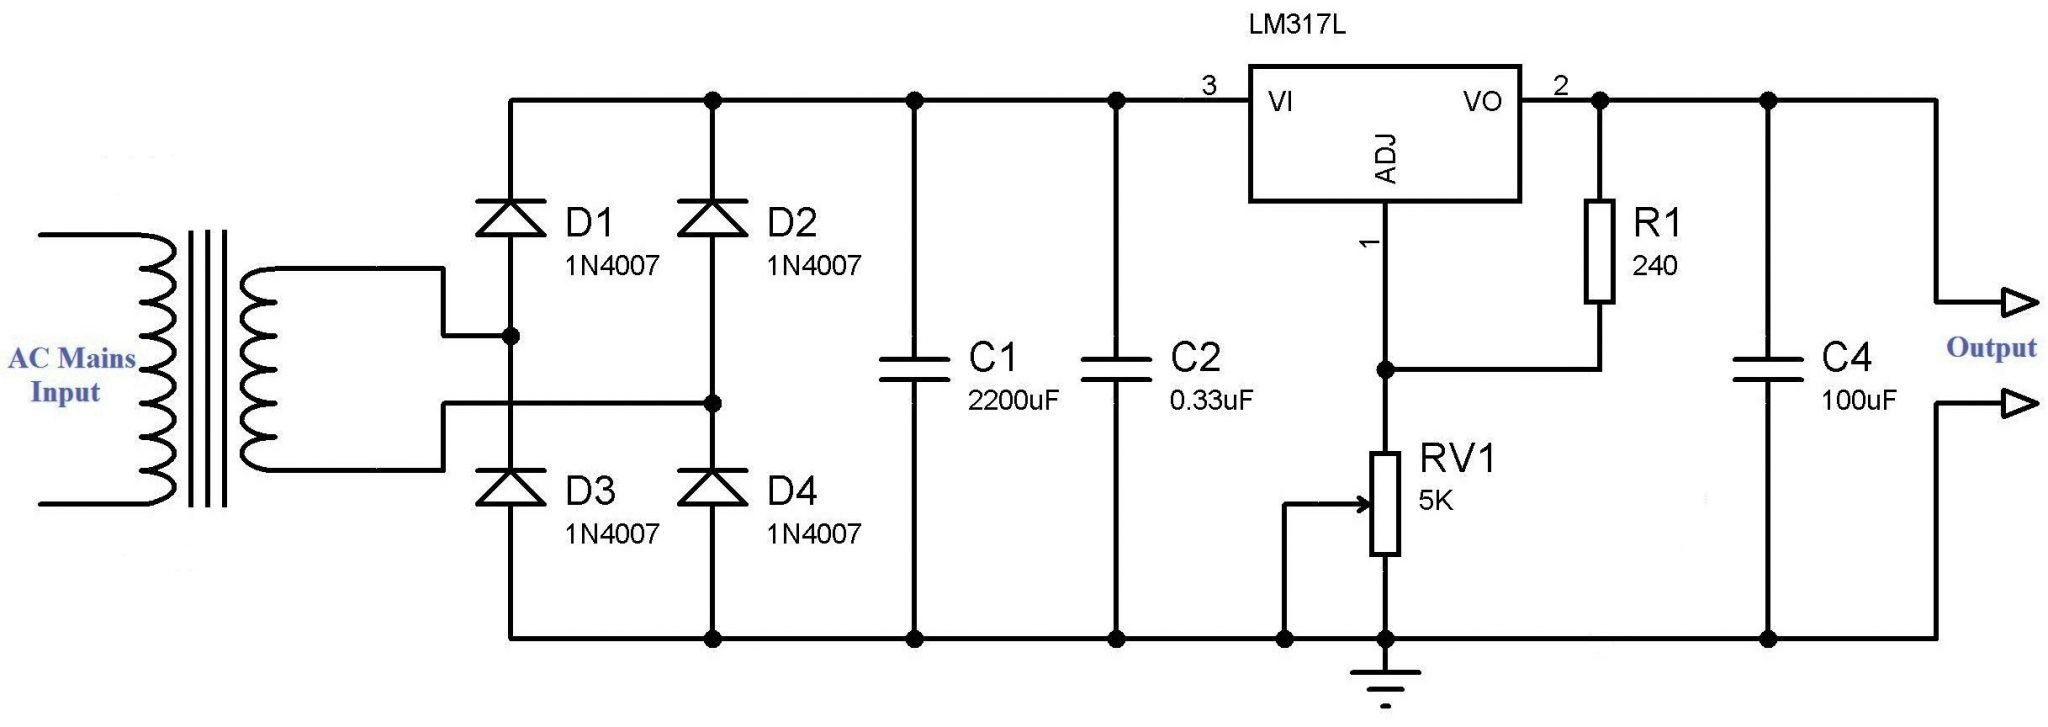 Circuit Diagram Of Smps Variable Battery Charger Electrical Wiring Simple Power Supply Using Lm317 Voltage Regulator Schematic